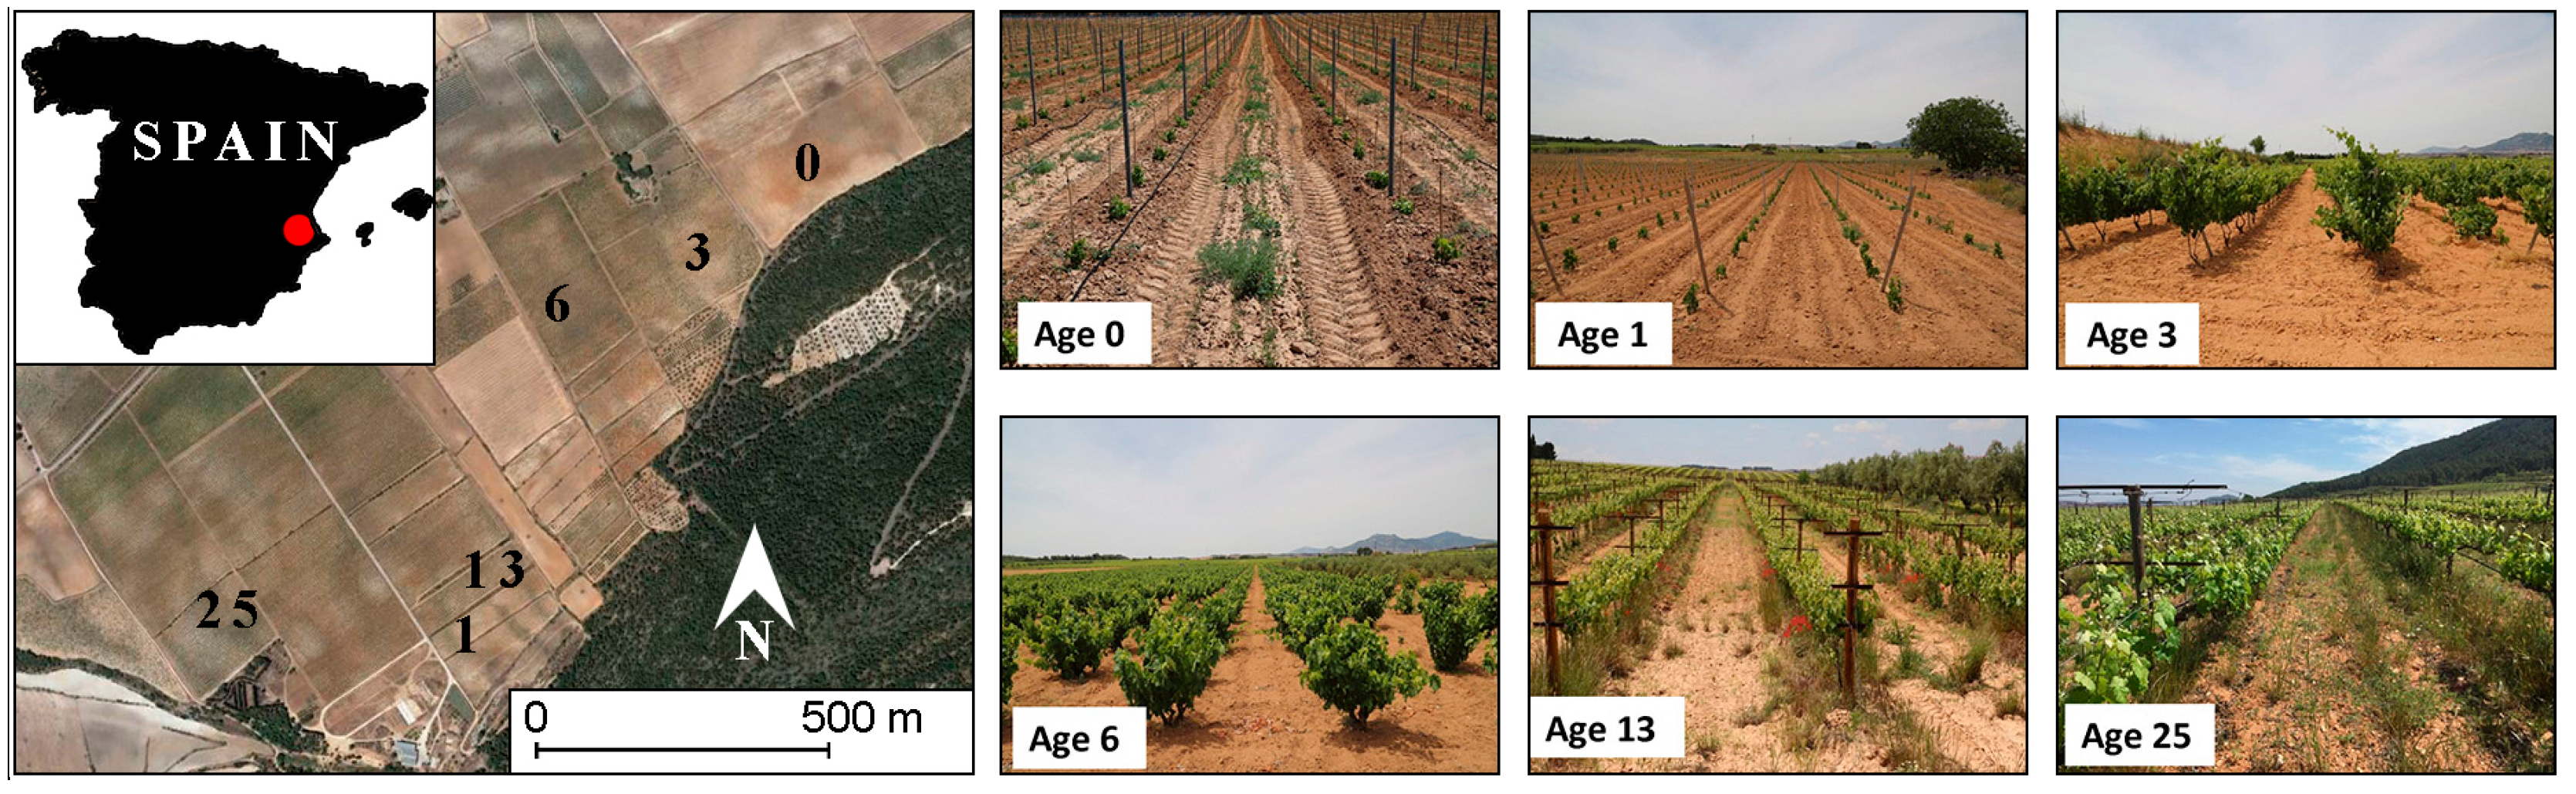 Water free full text the impact of the age of vines on soil no fandeluxe Gallery